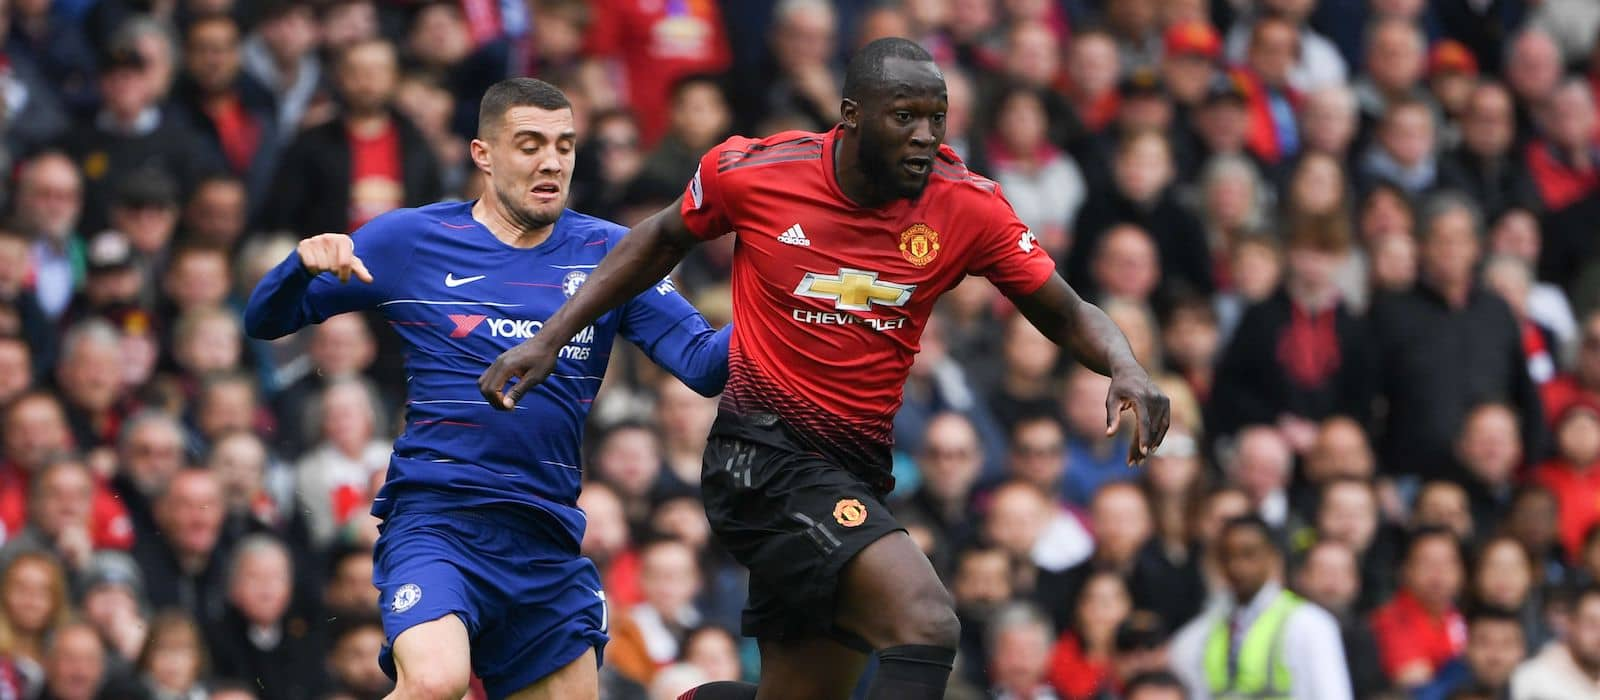 Manchester United willing to sell Romelu Lukaku for £75m